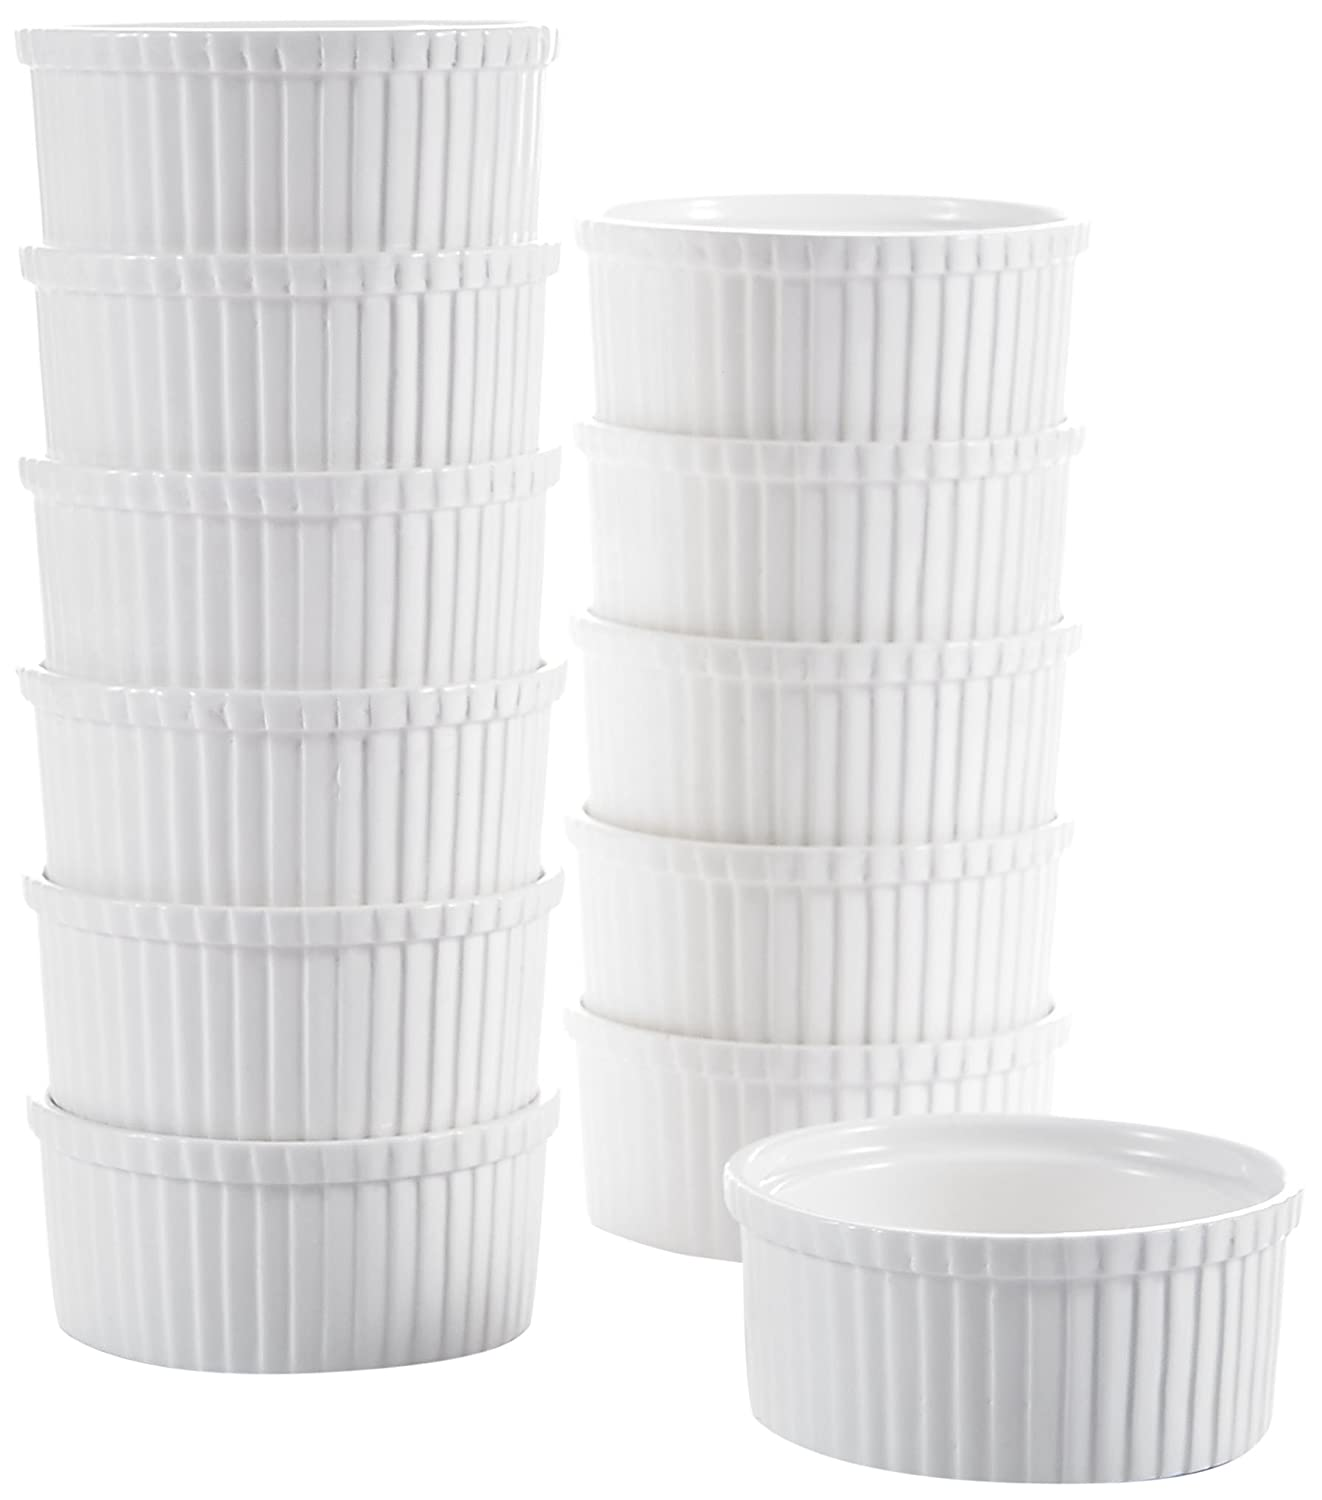 "Malacasa, Series Ramekin, 2.5"" (1.4oz) Ivory White Porcelain Serving Dishes Dipping Bowls, Set of 12 RAMEKIN.DISH-019"